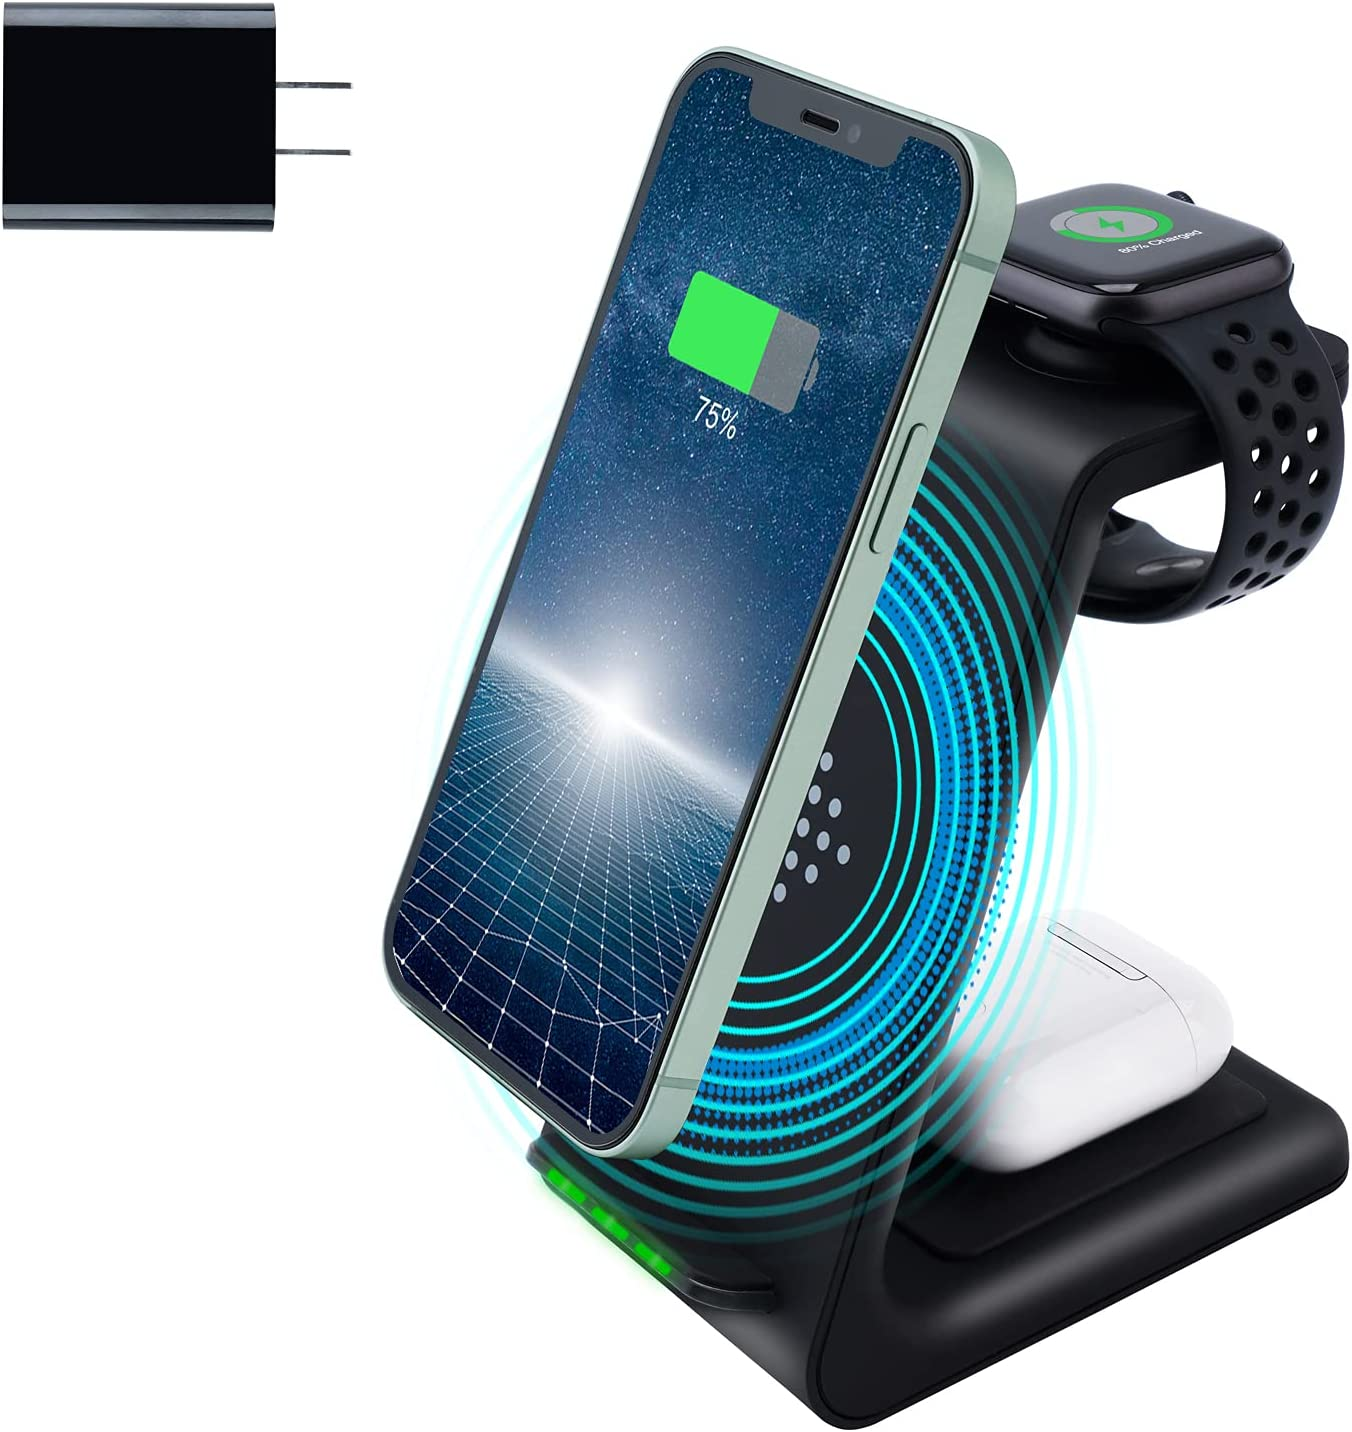 Amugpill Wireless Charger 3 in 1 free shipping C New color Fast Charging Dock Station Qi